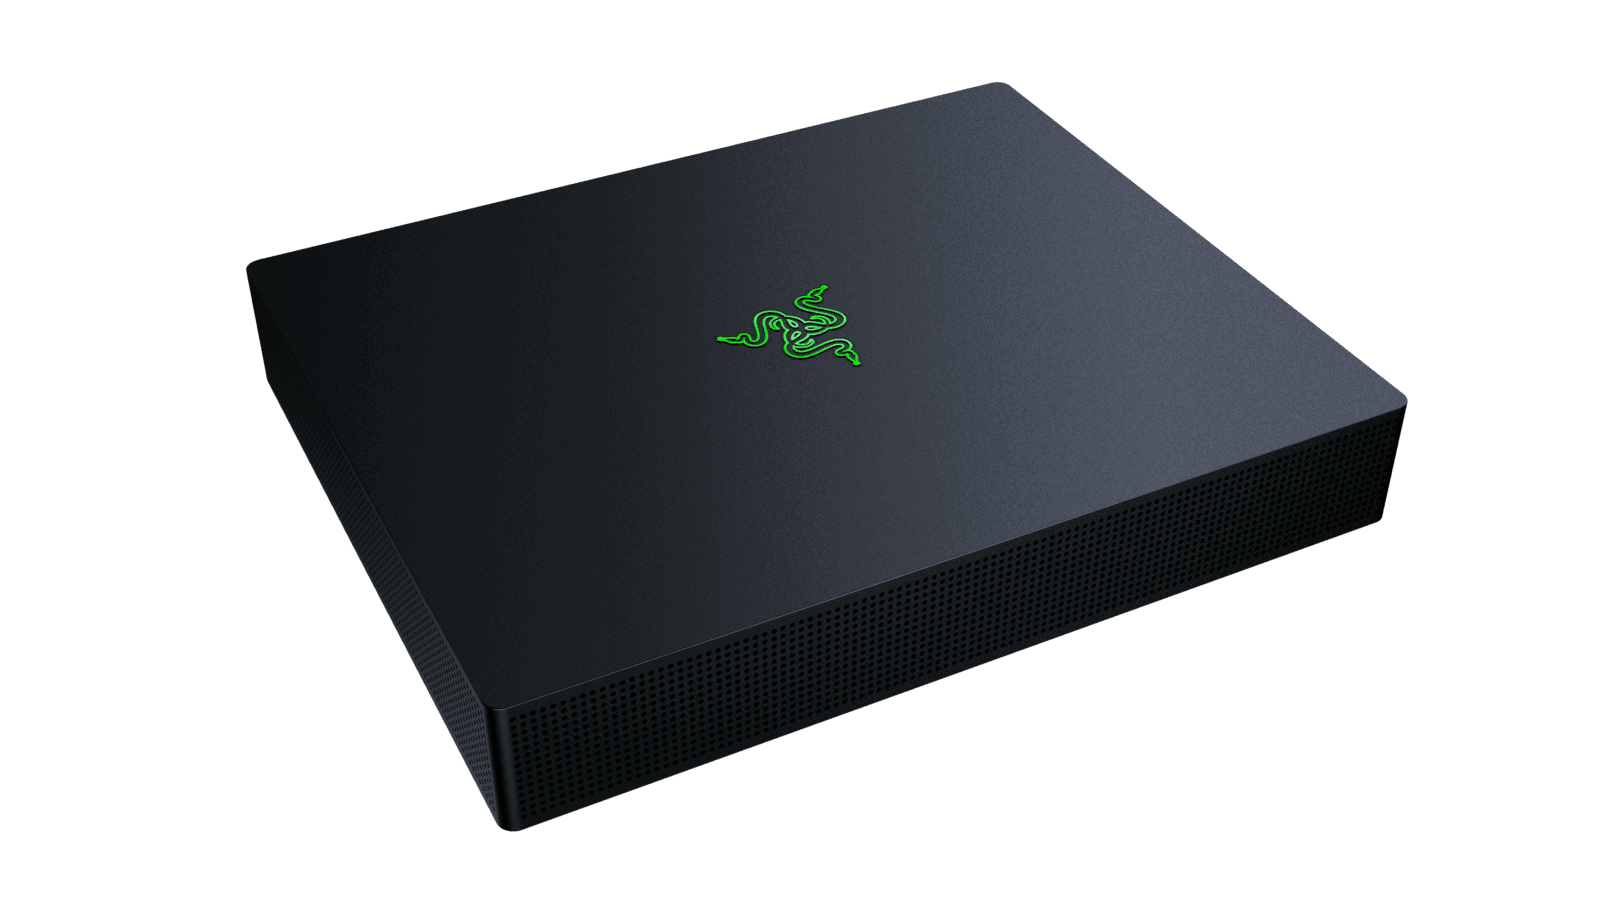 Razer Sila Is A Mesh Router Made For Gaming On Any